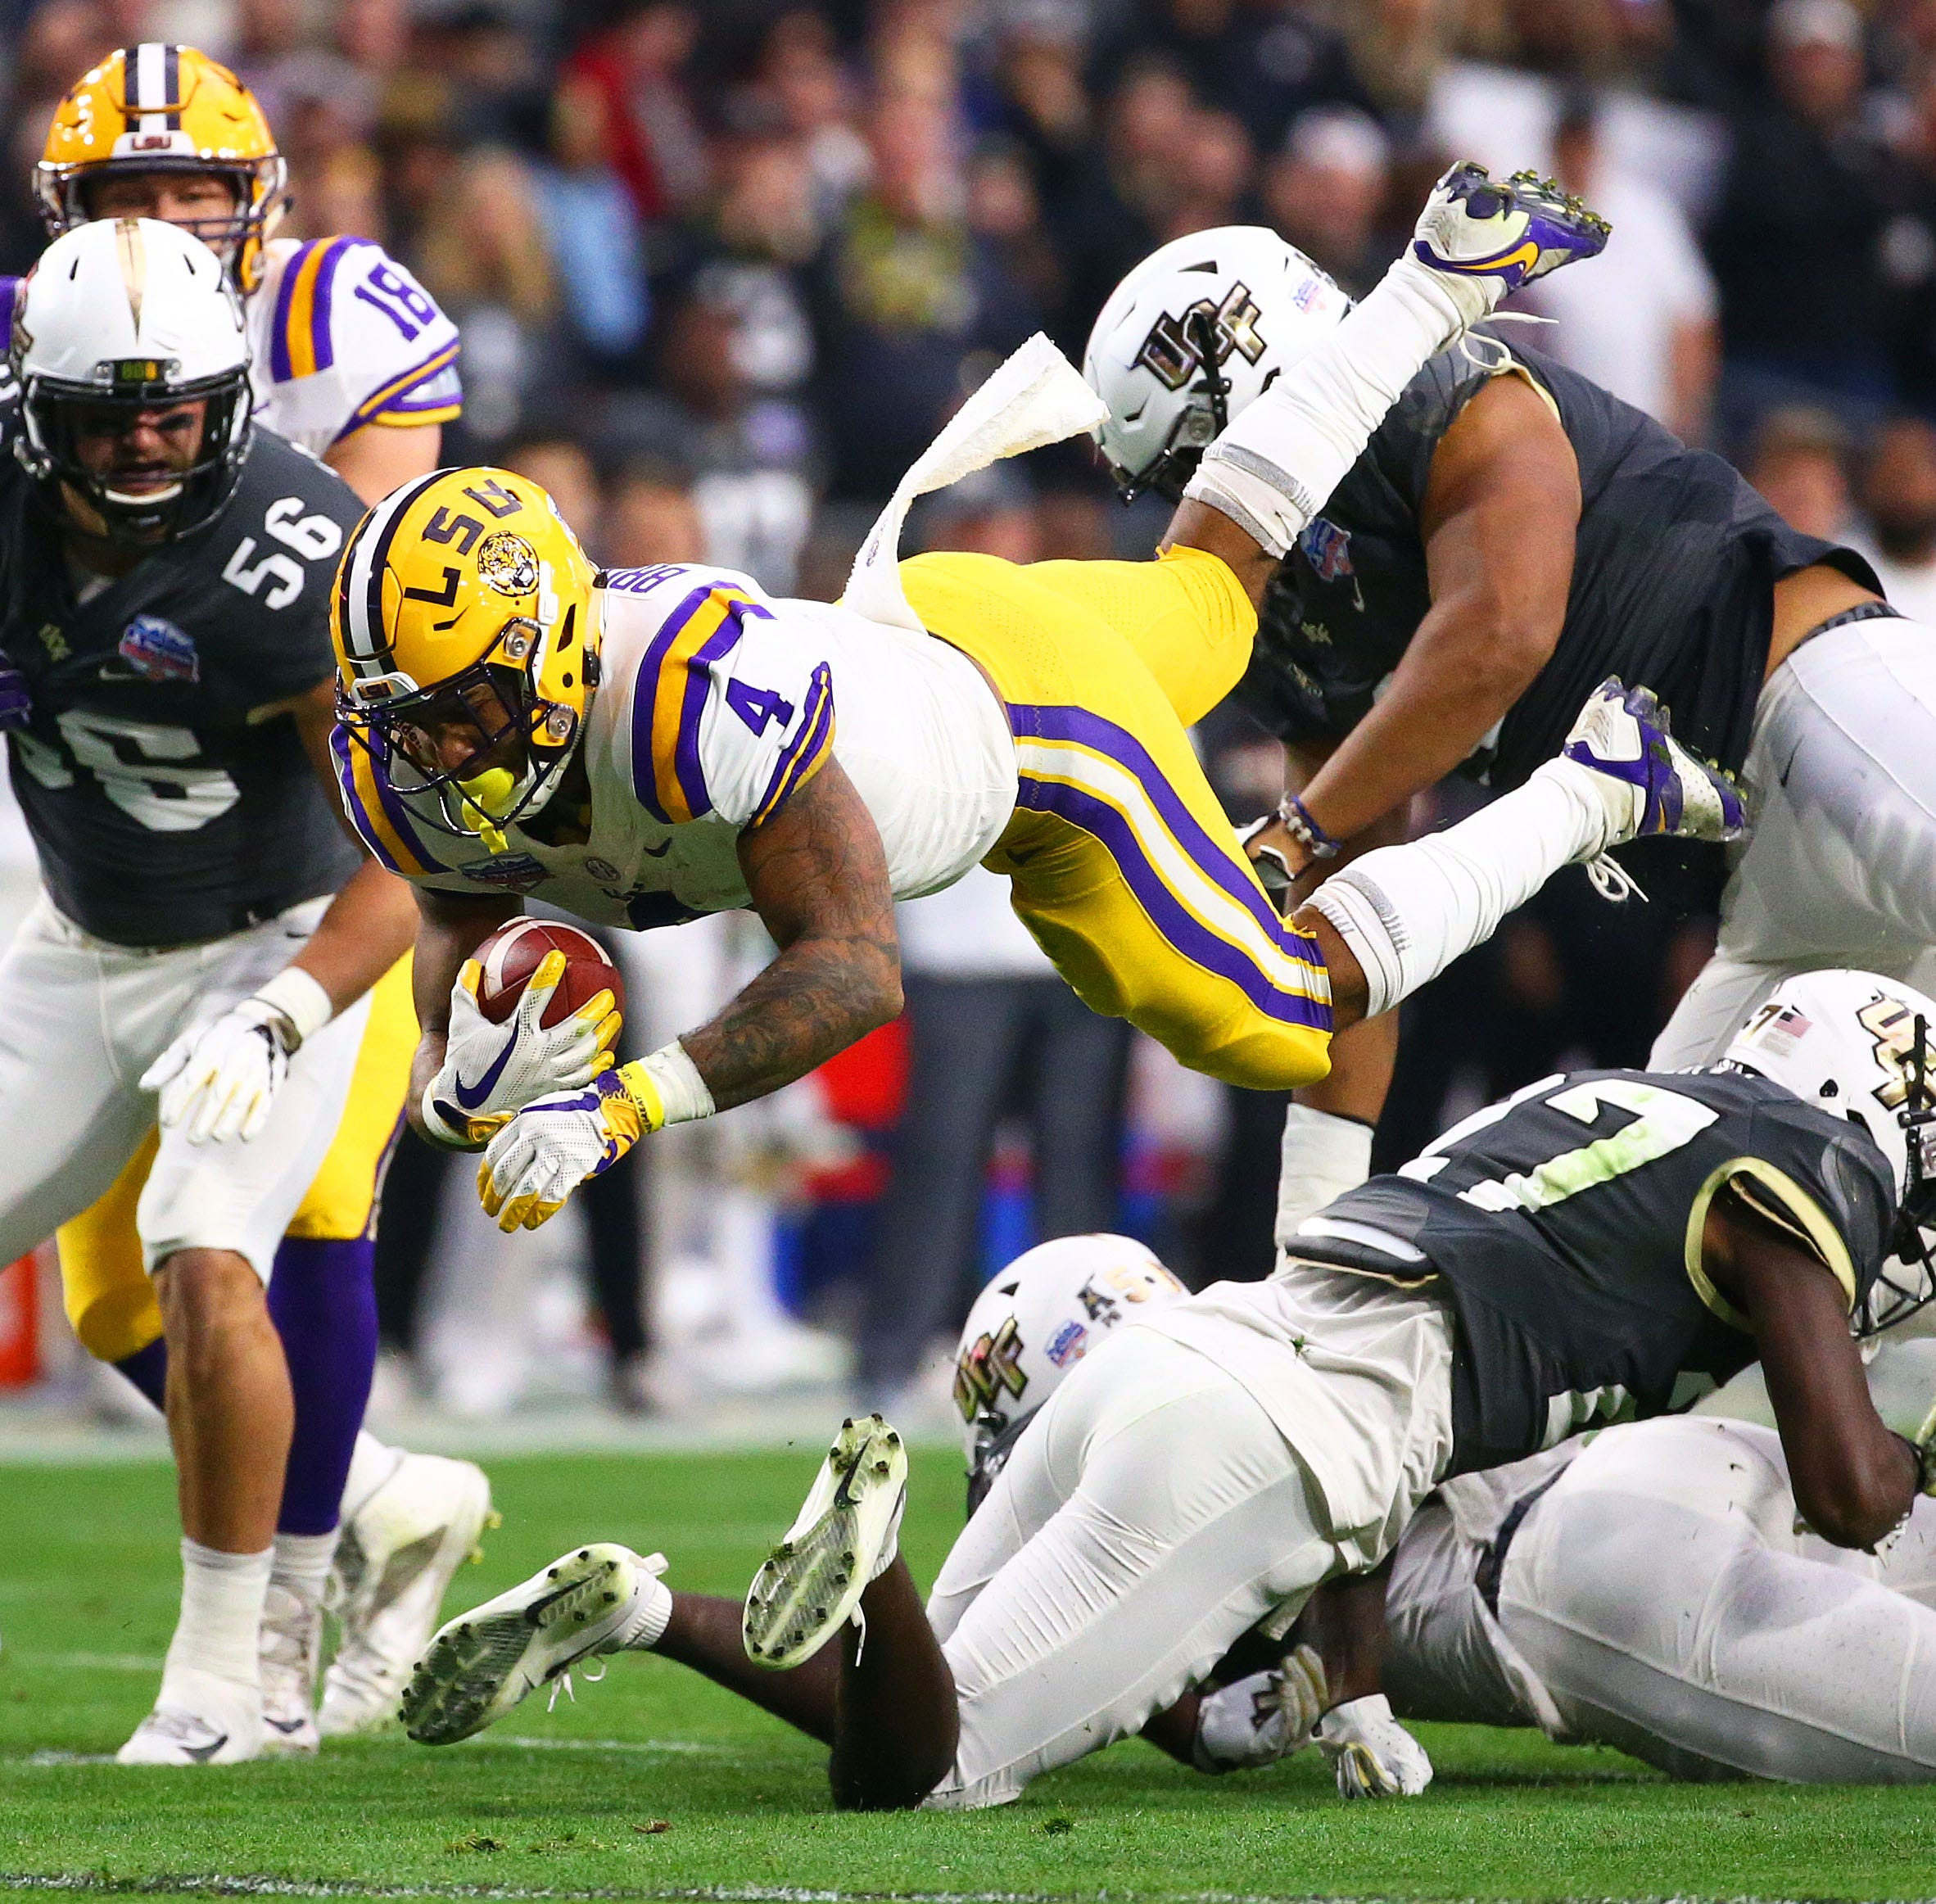 In Fiesta Bowl, LSU and UCF prove it's time to expand college playoff